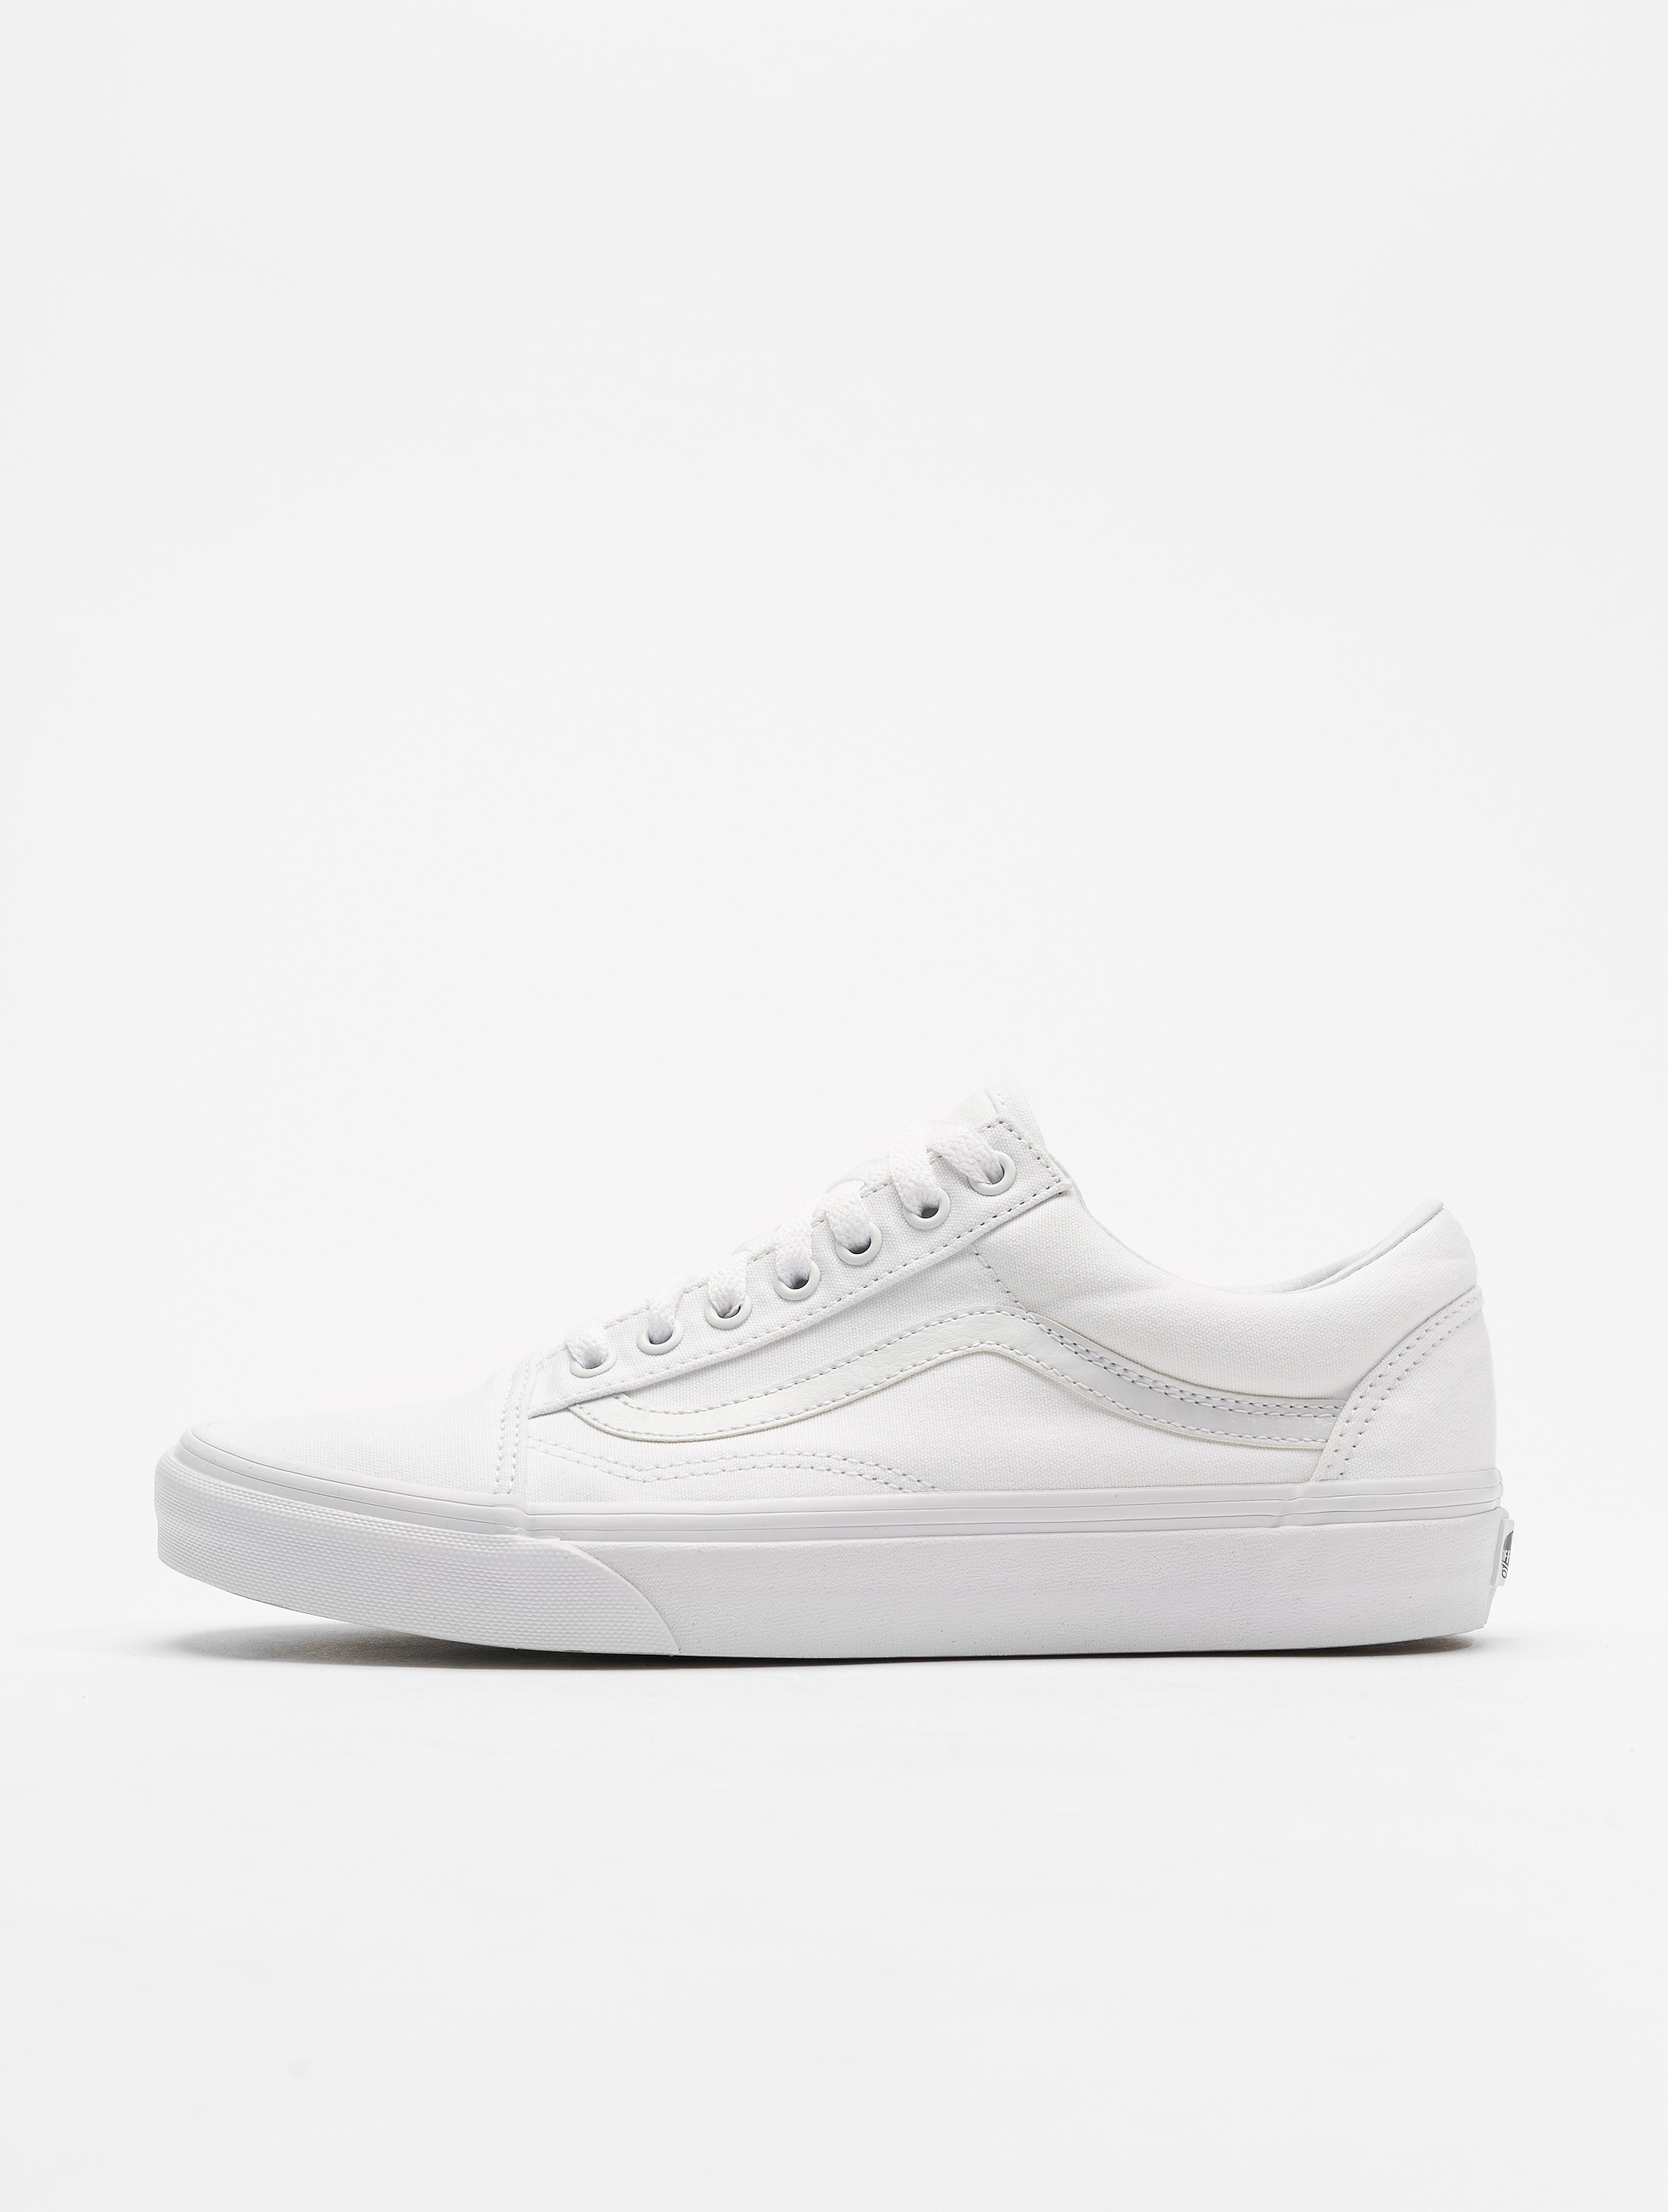 Vans Chaussures / Baskets Old Skool en blanc